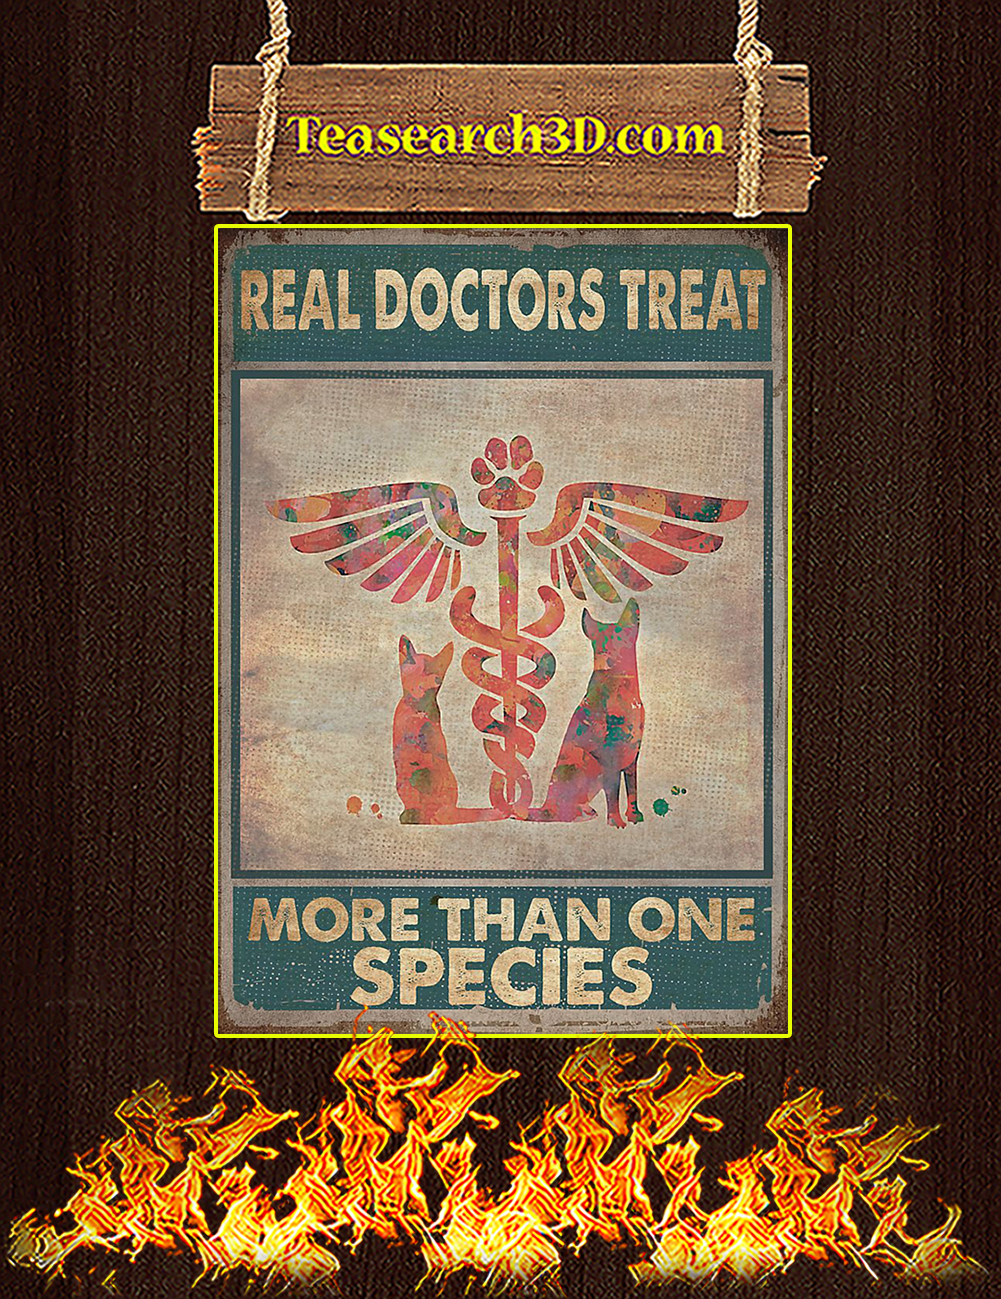 Veterinarian real doctors treat more than one species poster